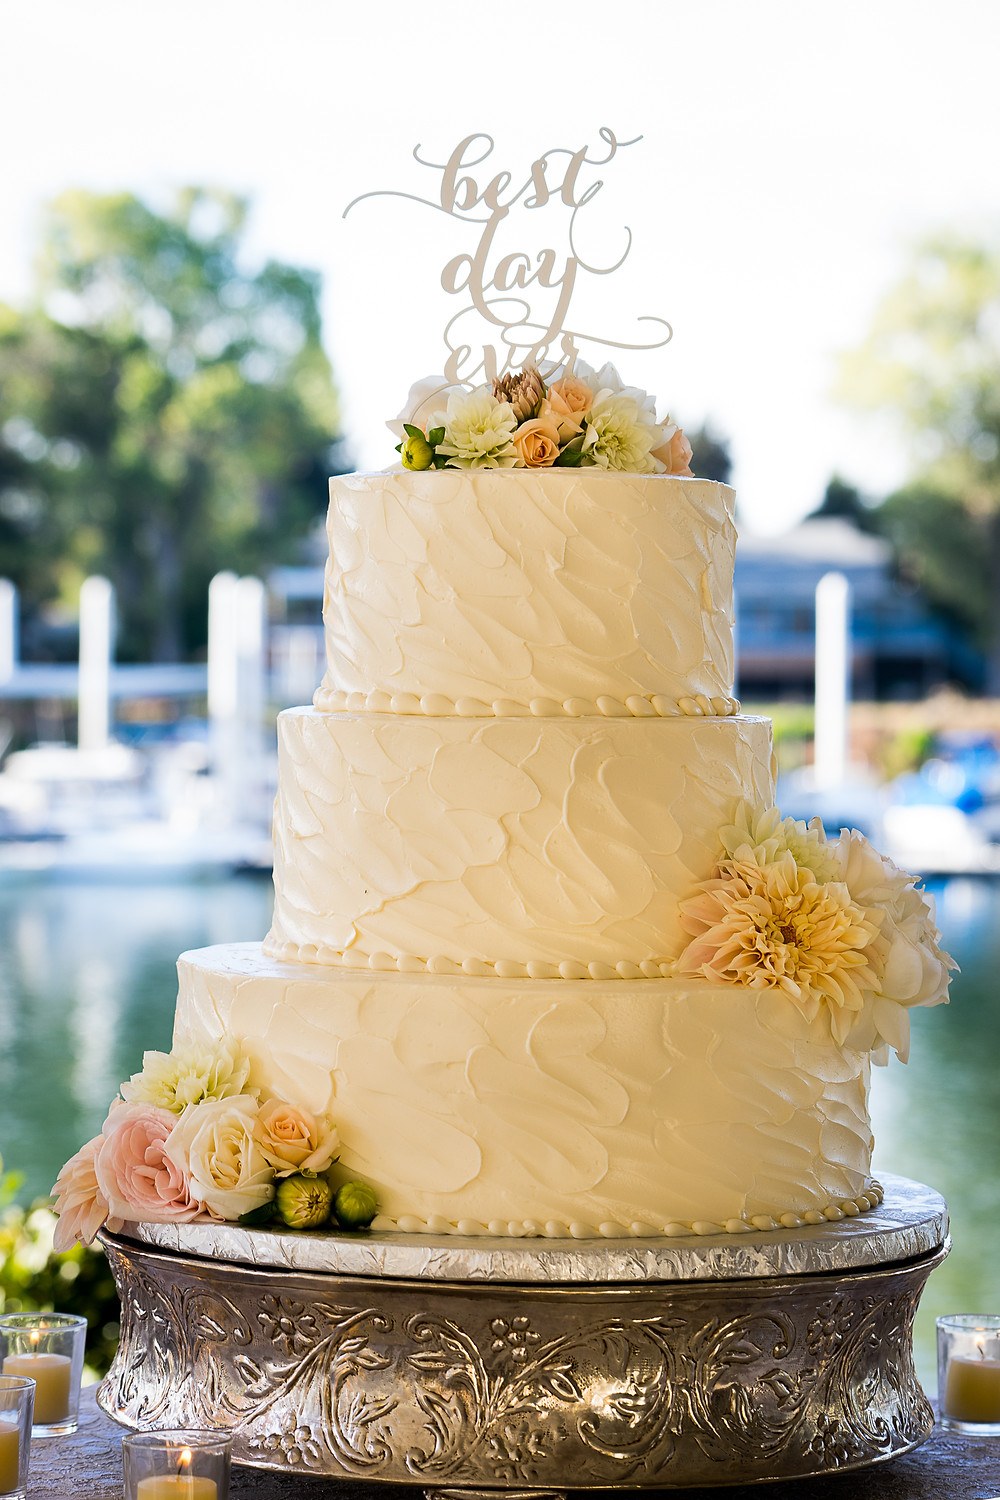 Best Day Ever cake by Freeport Bakery. Flowers by Visual Impact Design. Photo by Mapurunga Photography